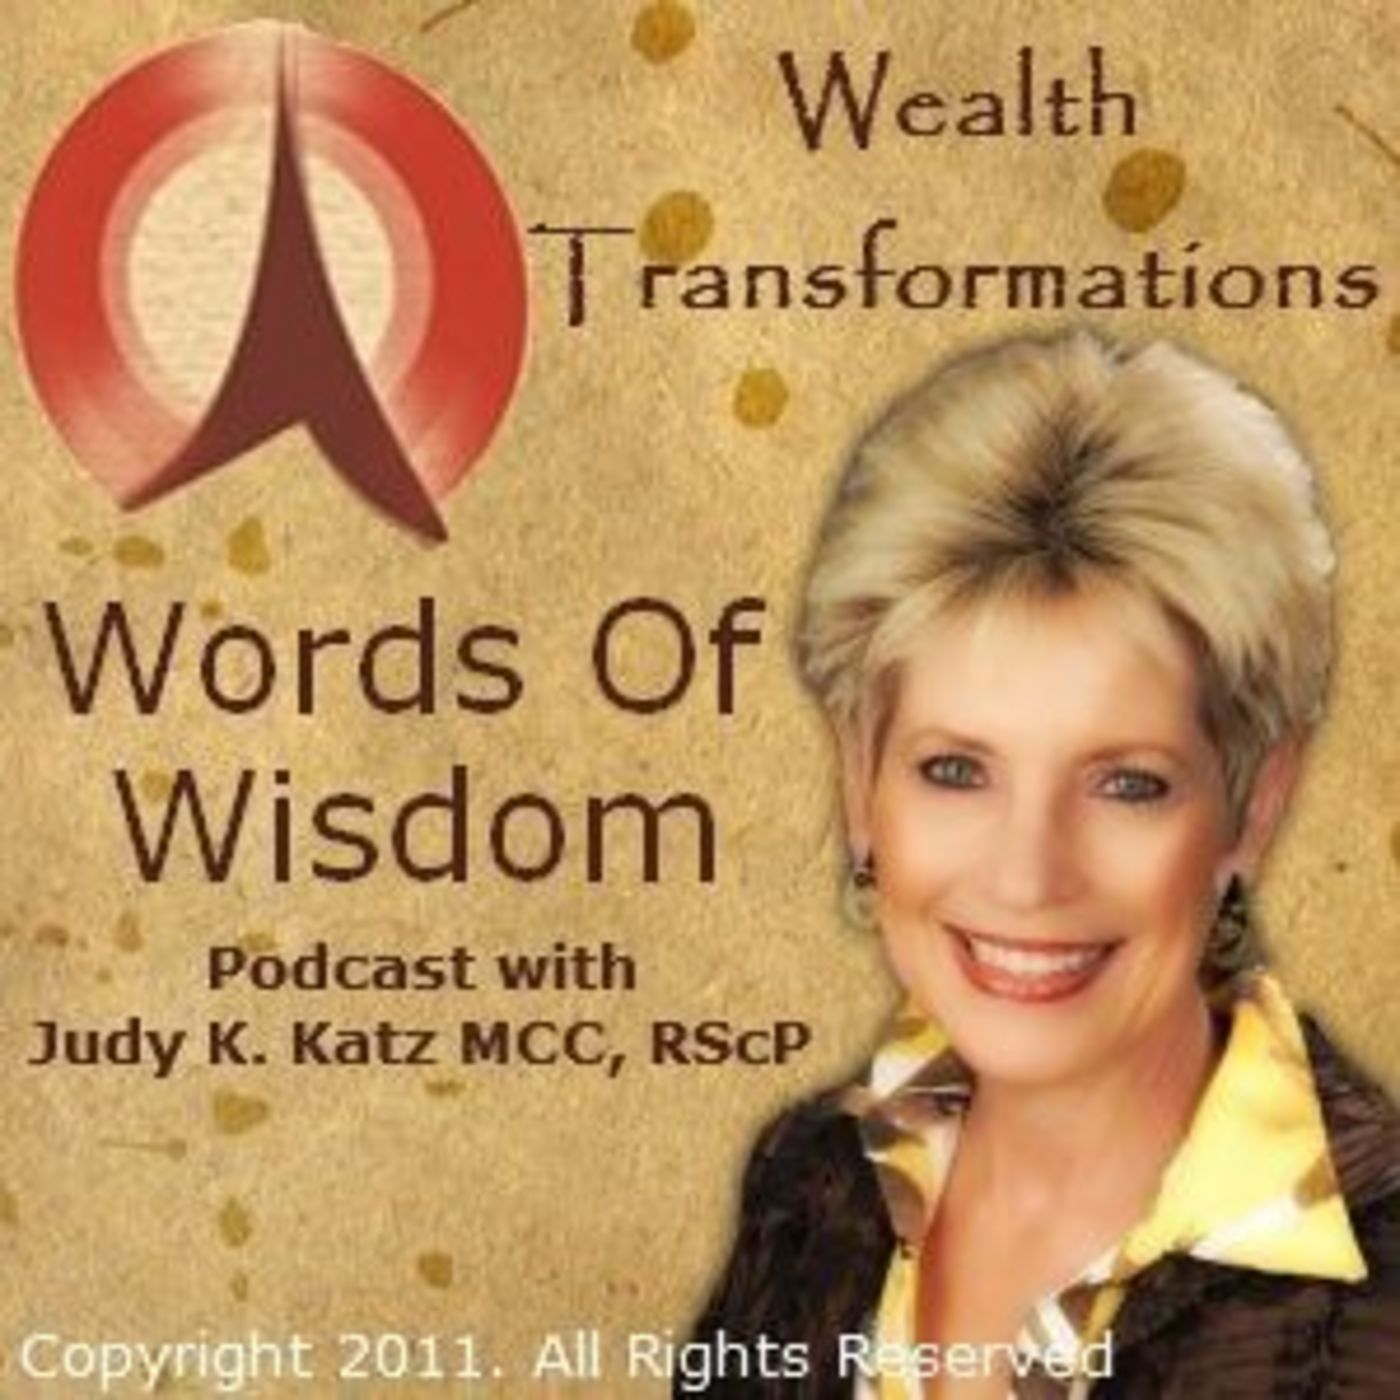 Wealth Transformations Words of Wisdom Podcast